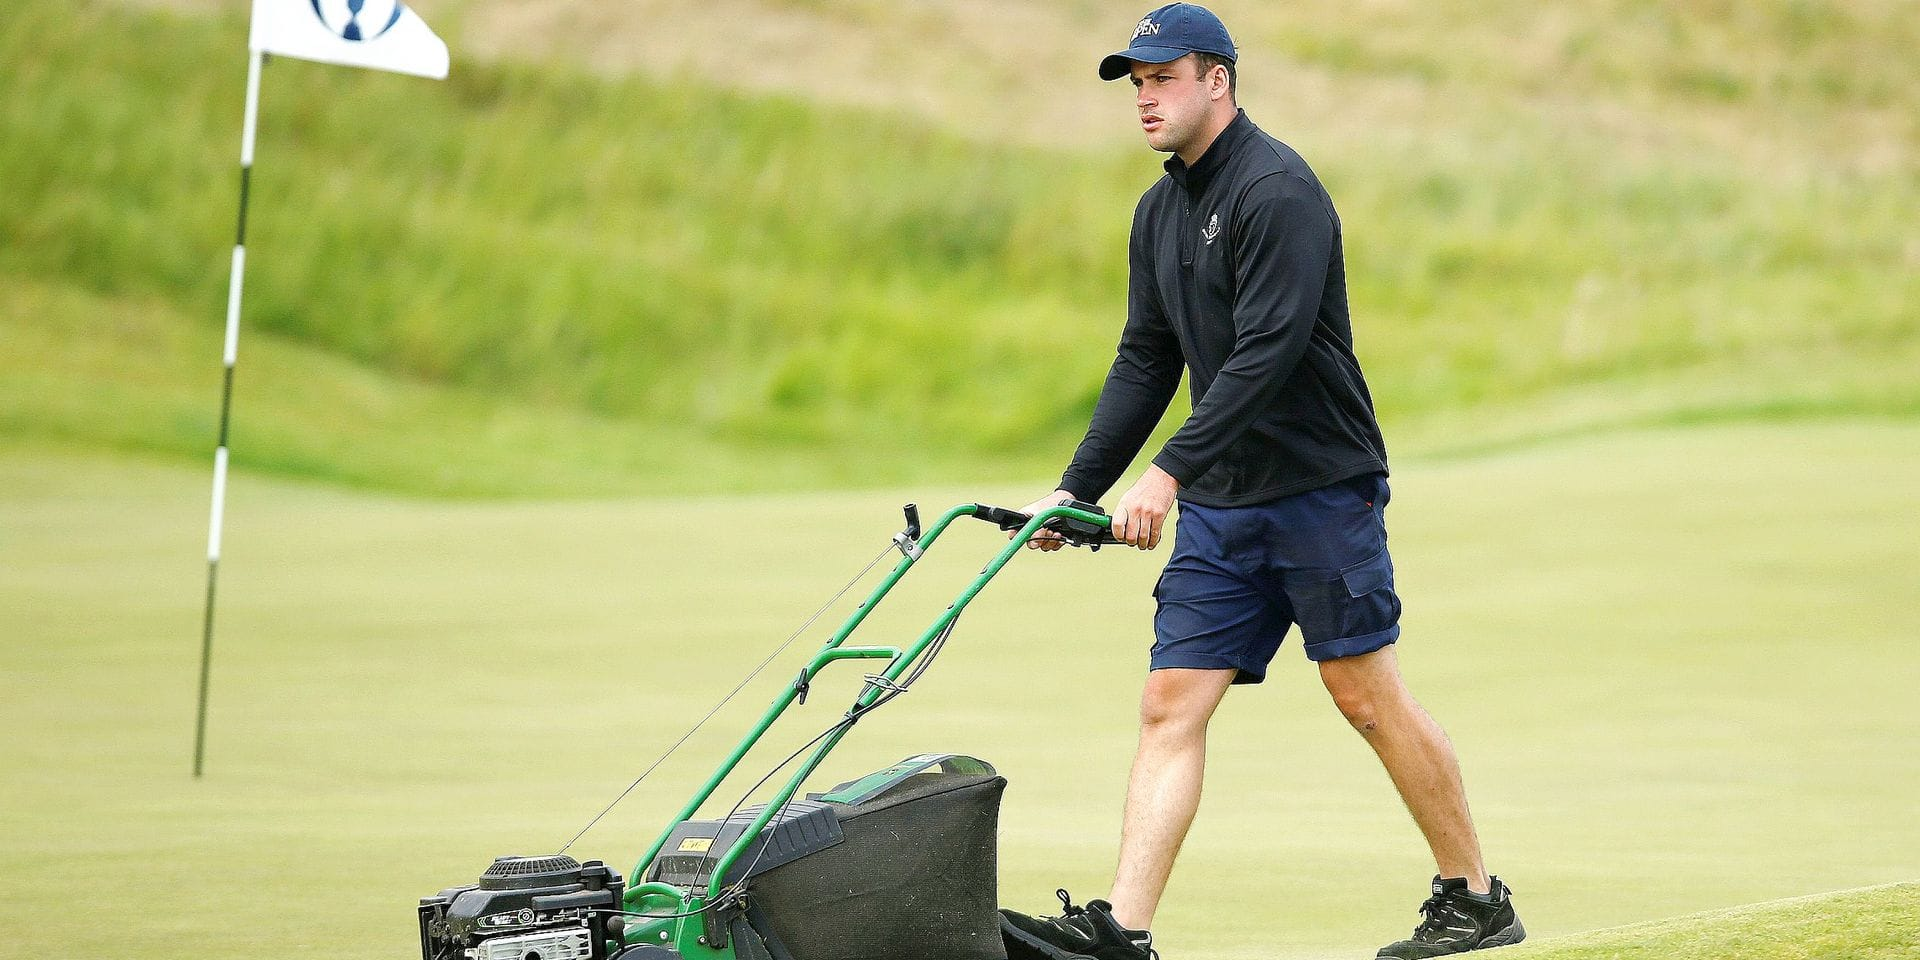 The 146th Open Championship - Royal Birkdale